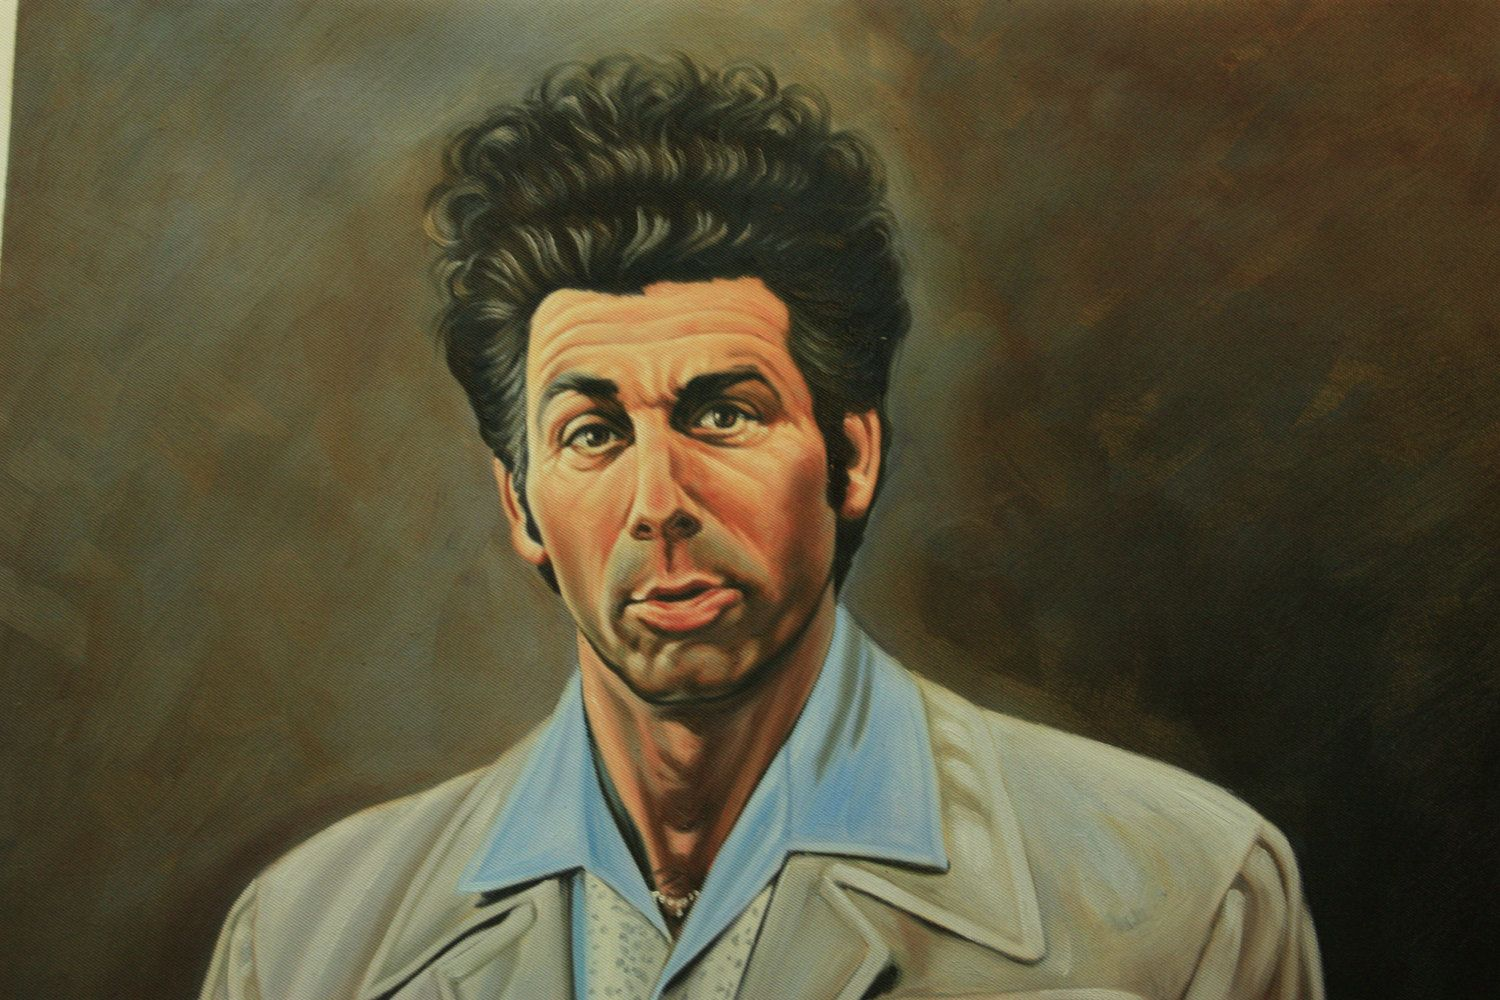 Seinfeld Cosmo Kramer Reproduction Painting 24x36 100 Money